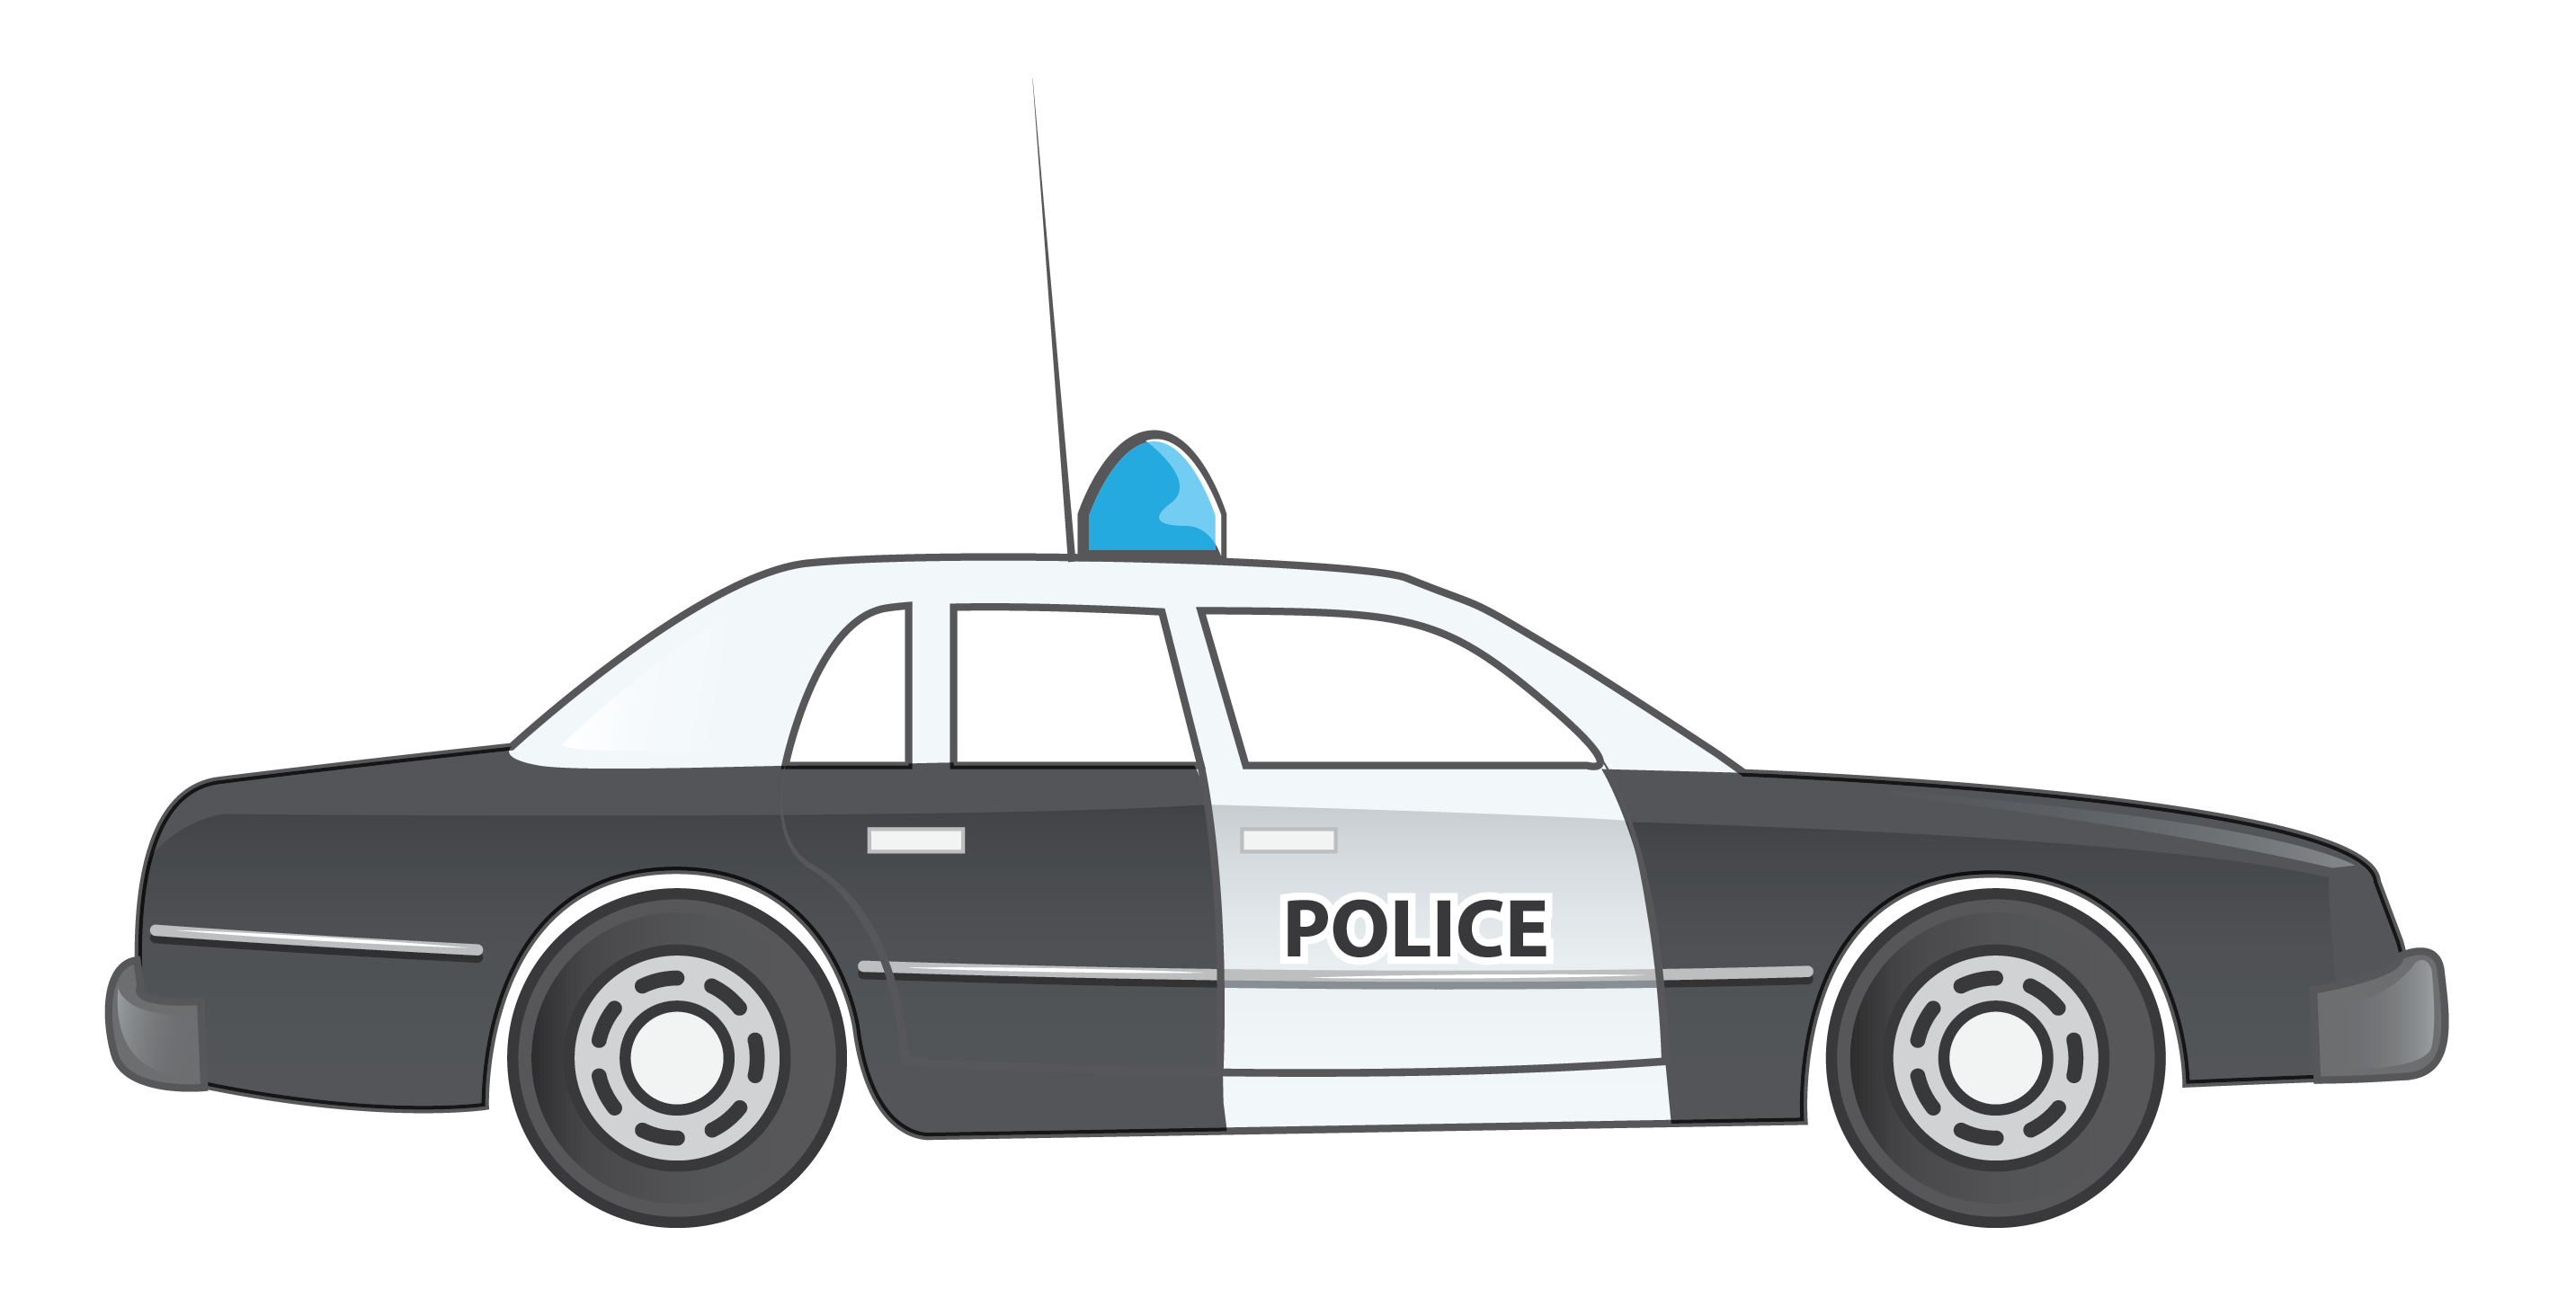 Lamborghini clipart police car Car Images projects For Free